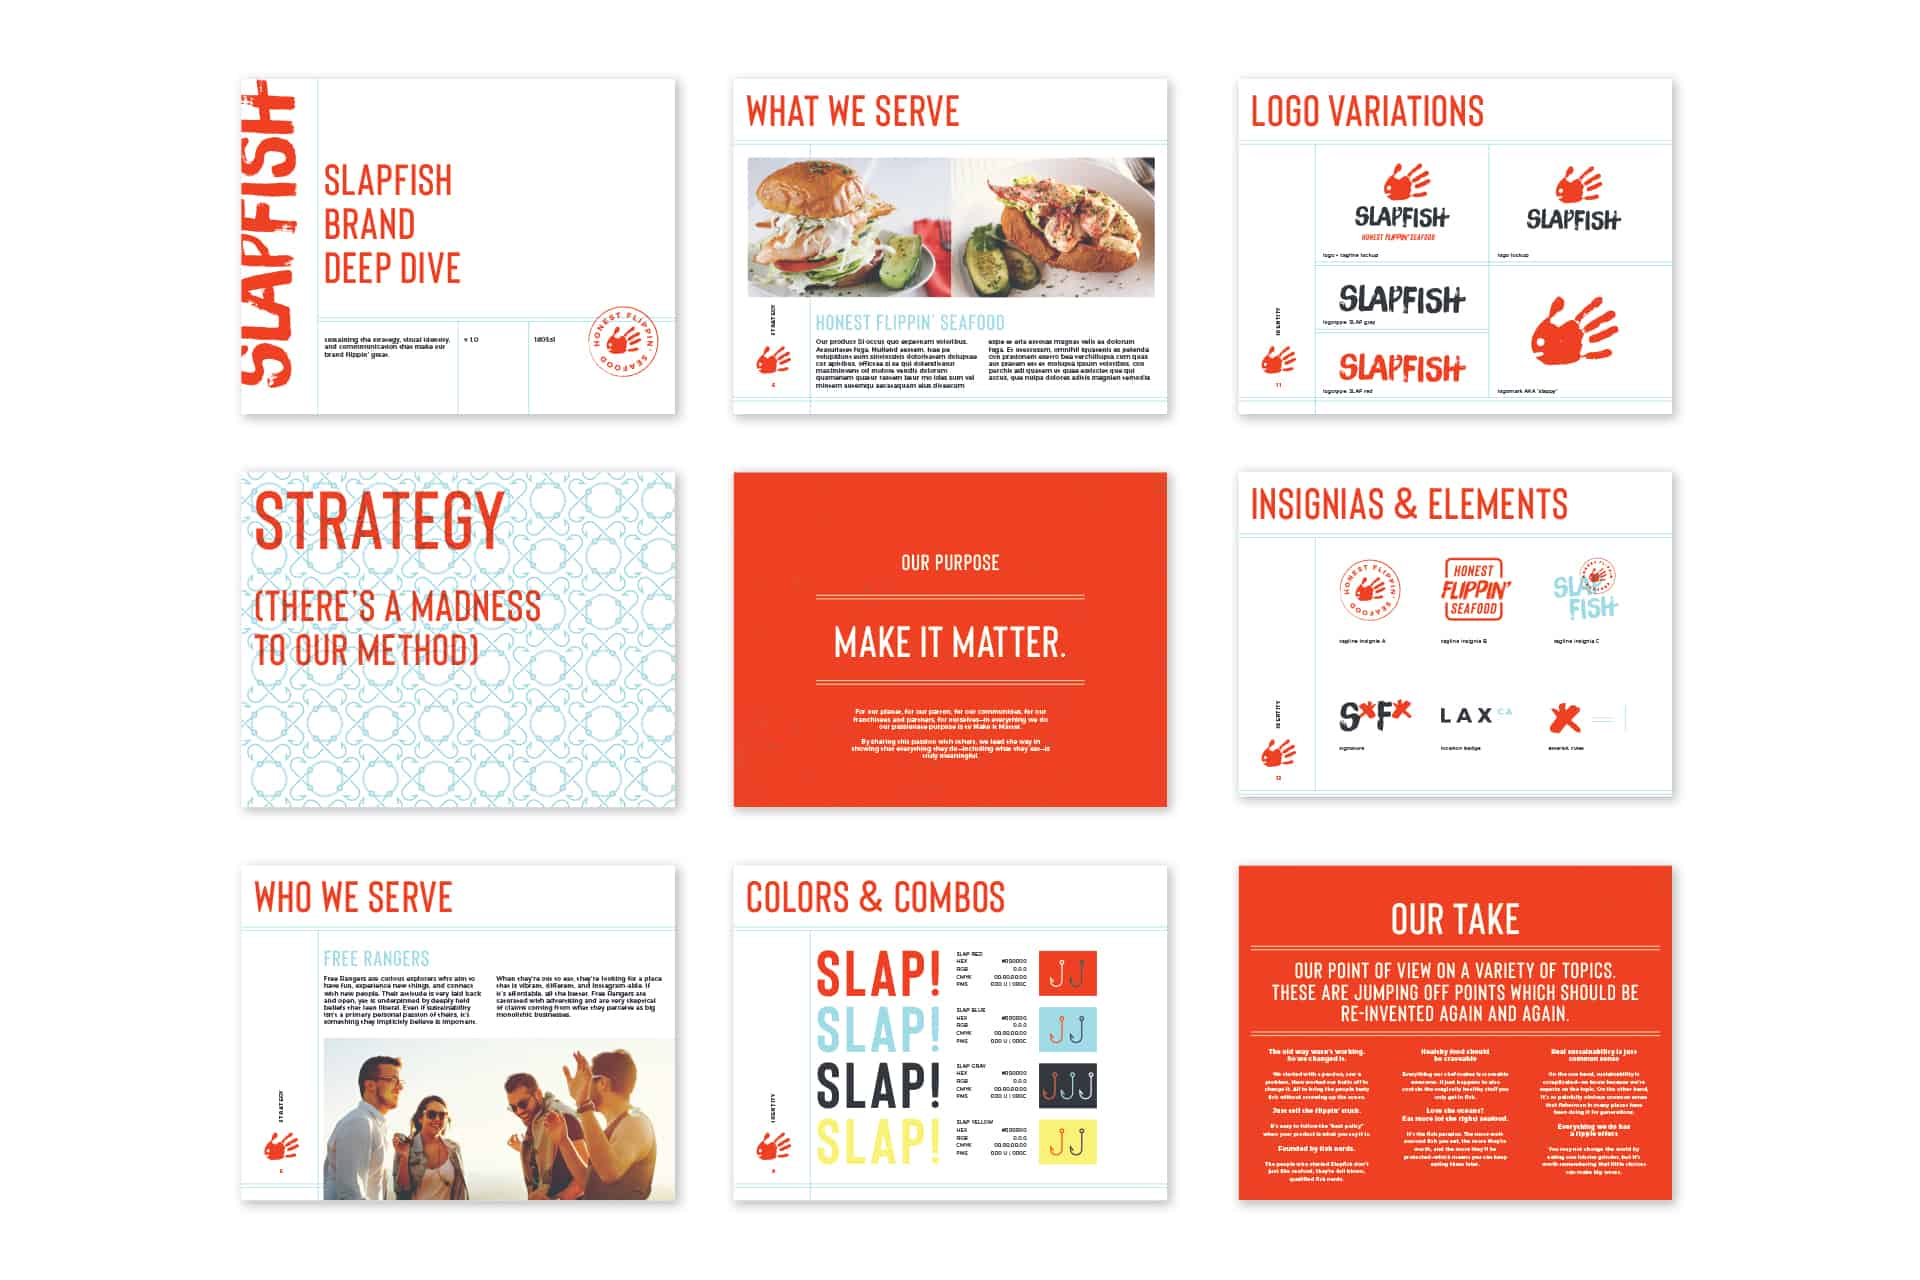 SlapFish seafood restaurant brand standards manual